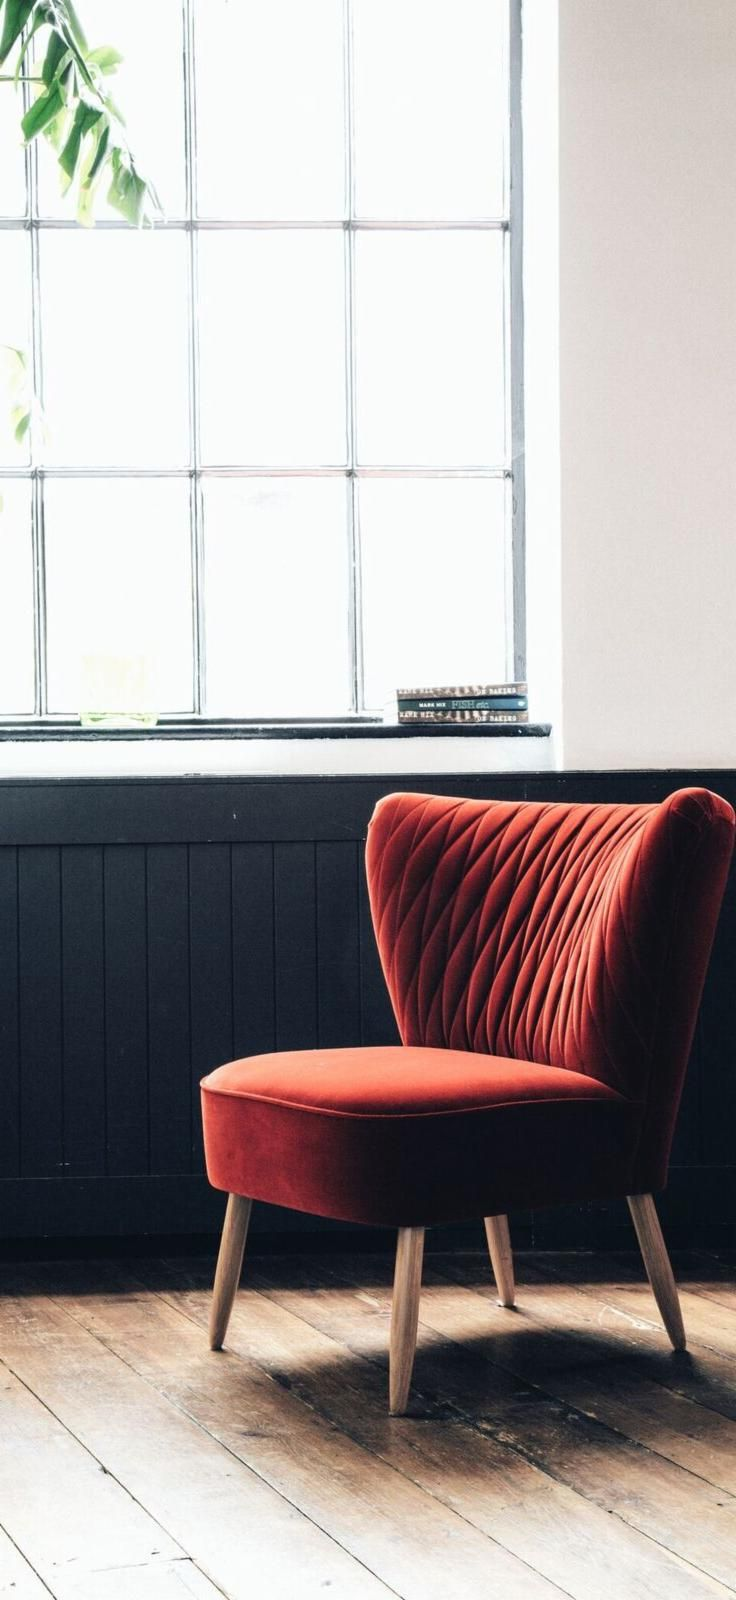 Introducing the newest member of our cocktail chair collection – the Quin in rouge/red. Aptly named for the stitched harlequin pattern on its back, its curvaceous 1950s style makes it a compact accent chair full of character.